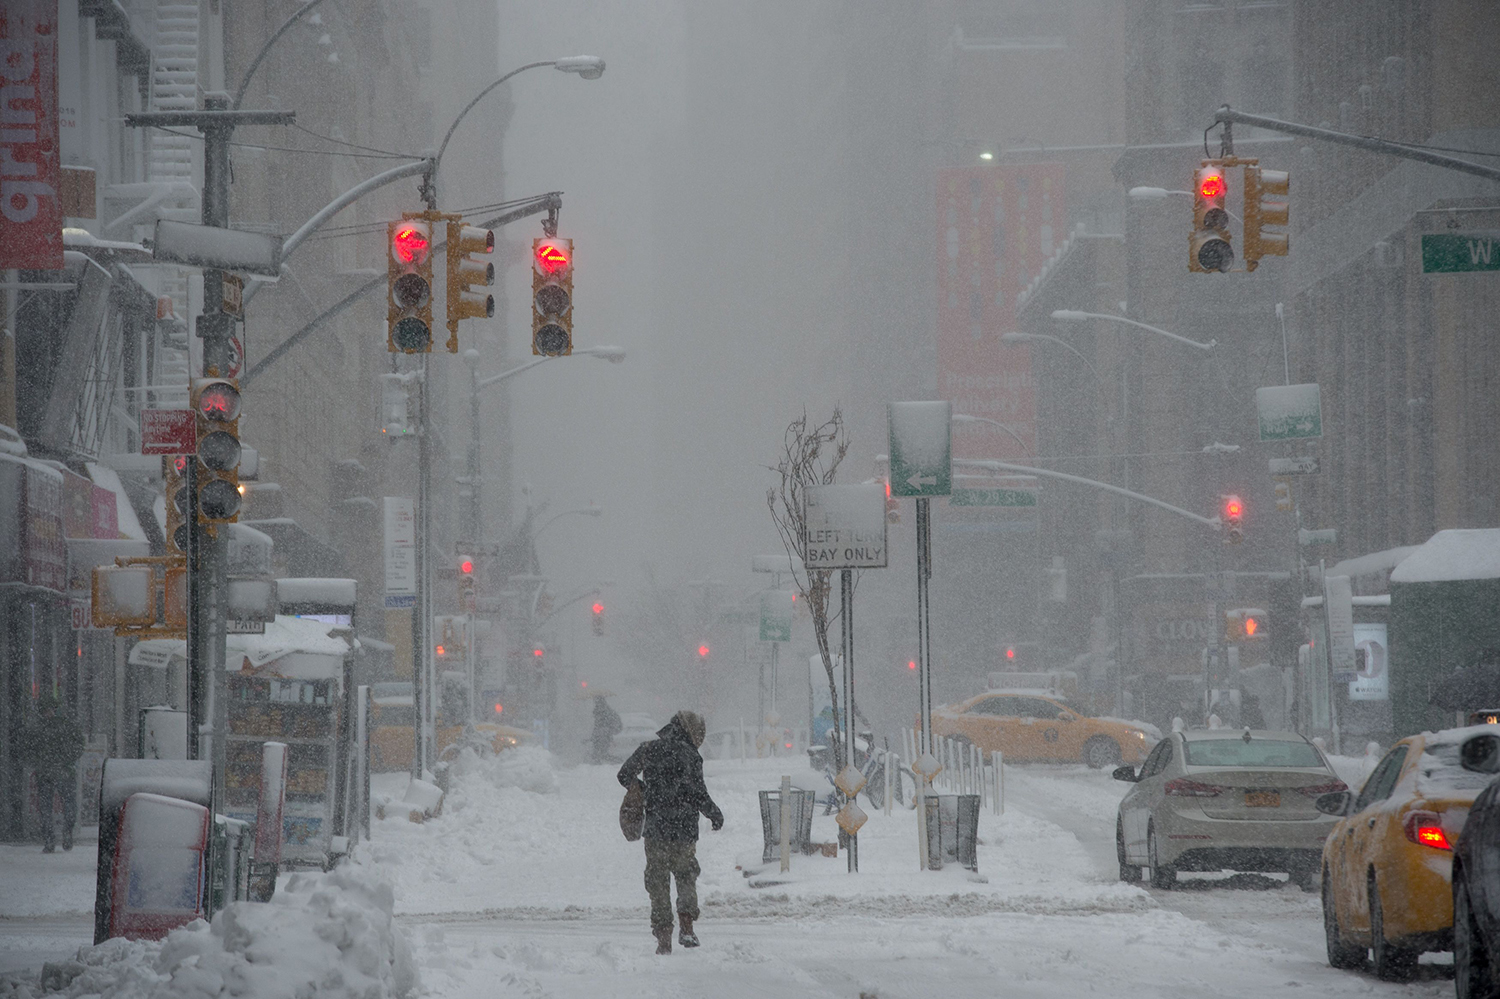 TOPSHOT - A person walks down Broadway during a winter storm, February 9, 2017 in New York. / AFP PHOTO / Bryan R. Smith / TT / kod 444